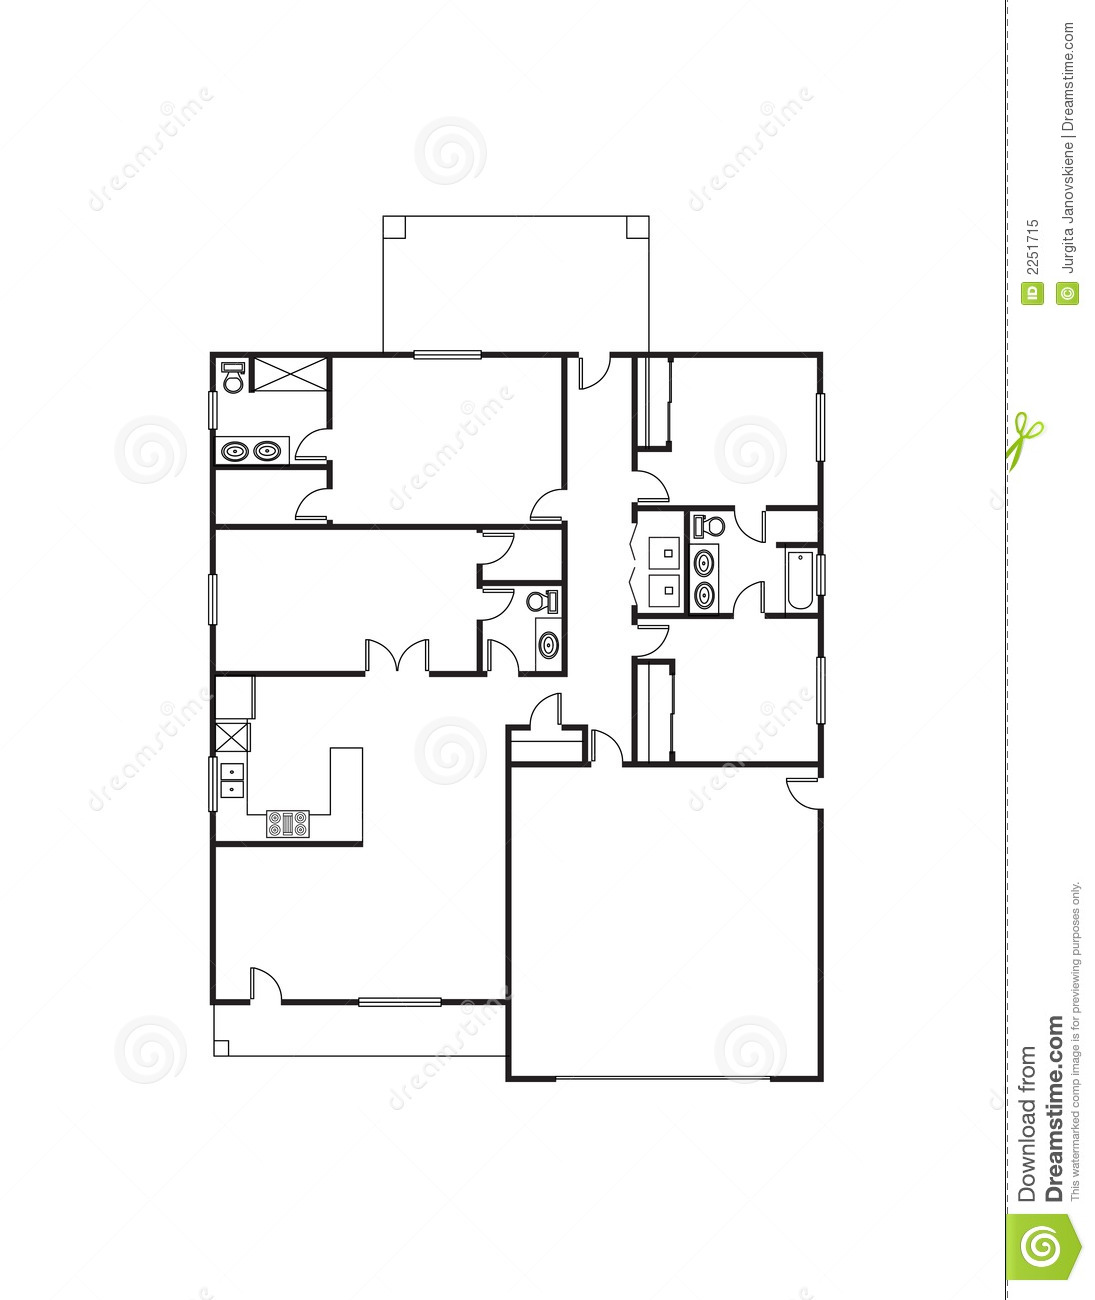 House Plan Royalty Free Stock Photo Image 2251715